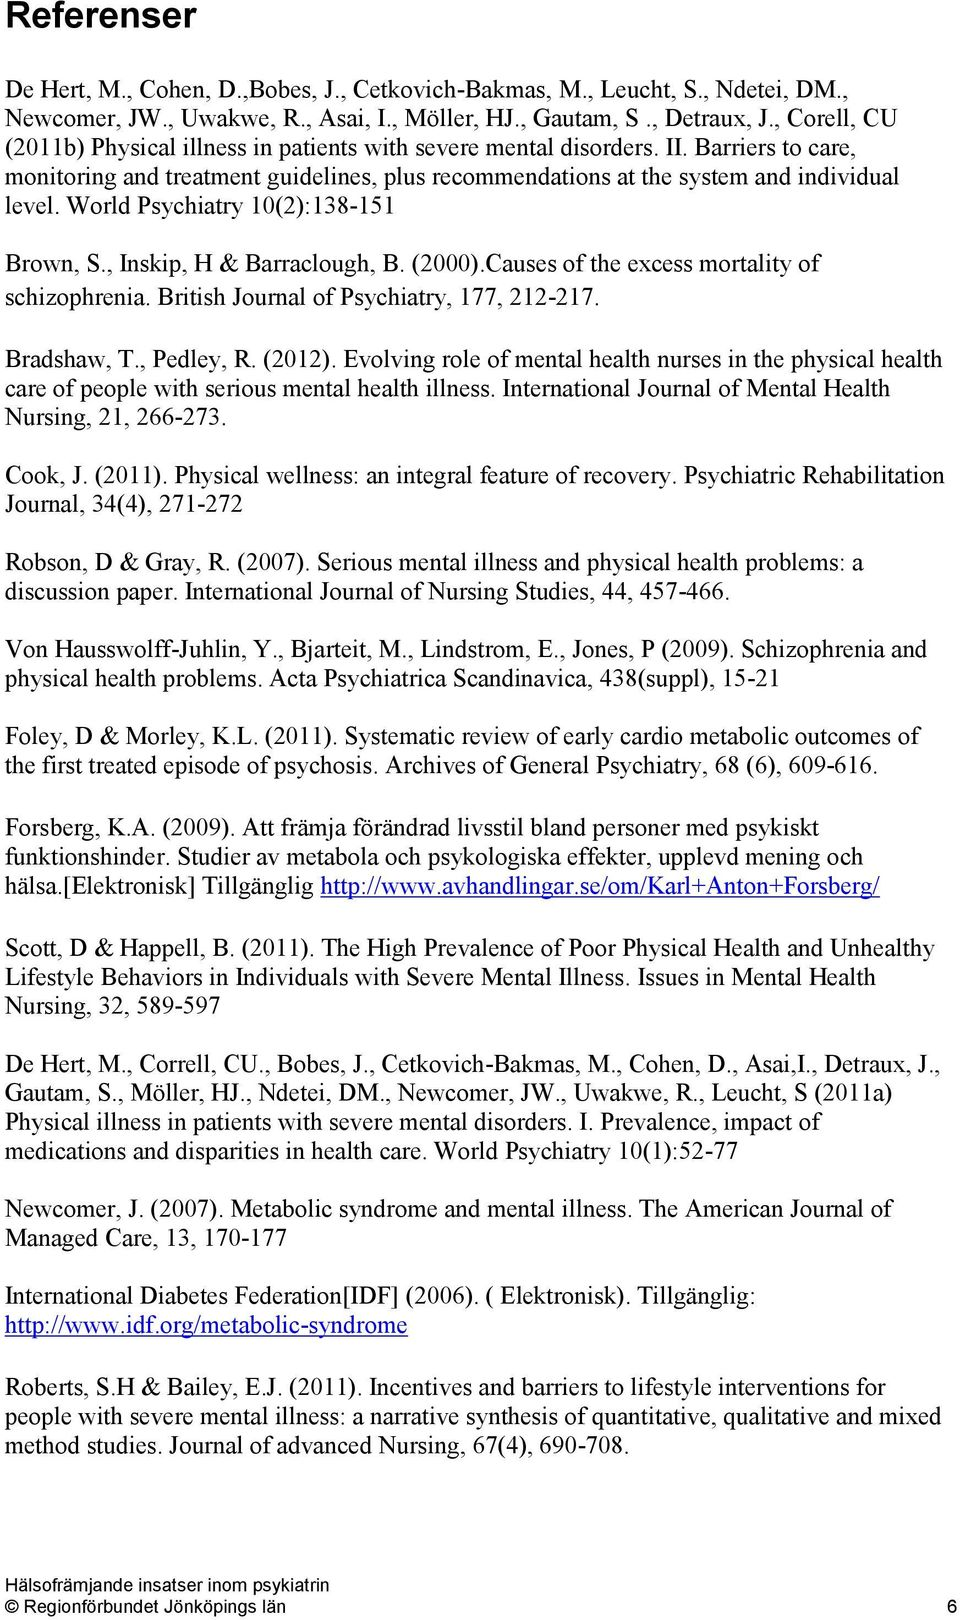 World Psychiatry 10(2):138-151 Brown, S., Inskip, H & Barraclough, B. (2000).Causes of the excess mortality of schizophrenia. British Journal of Psychiatry, 177, 212-217. Bradshaw, T., Pedley, R.